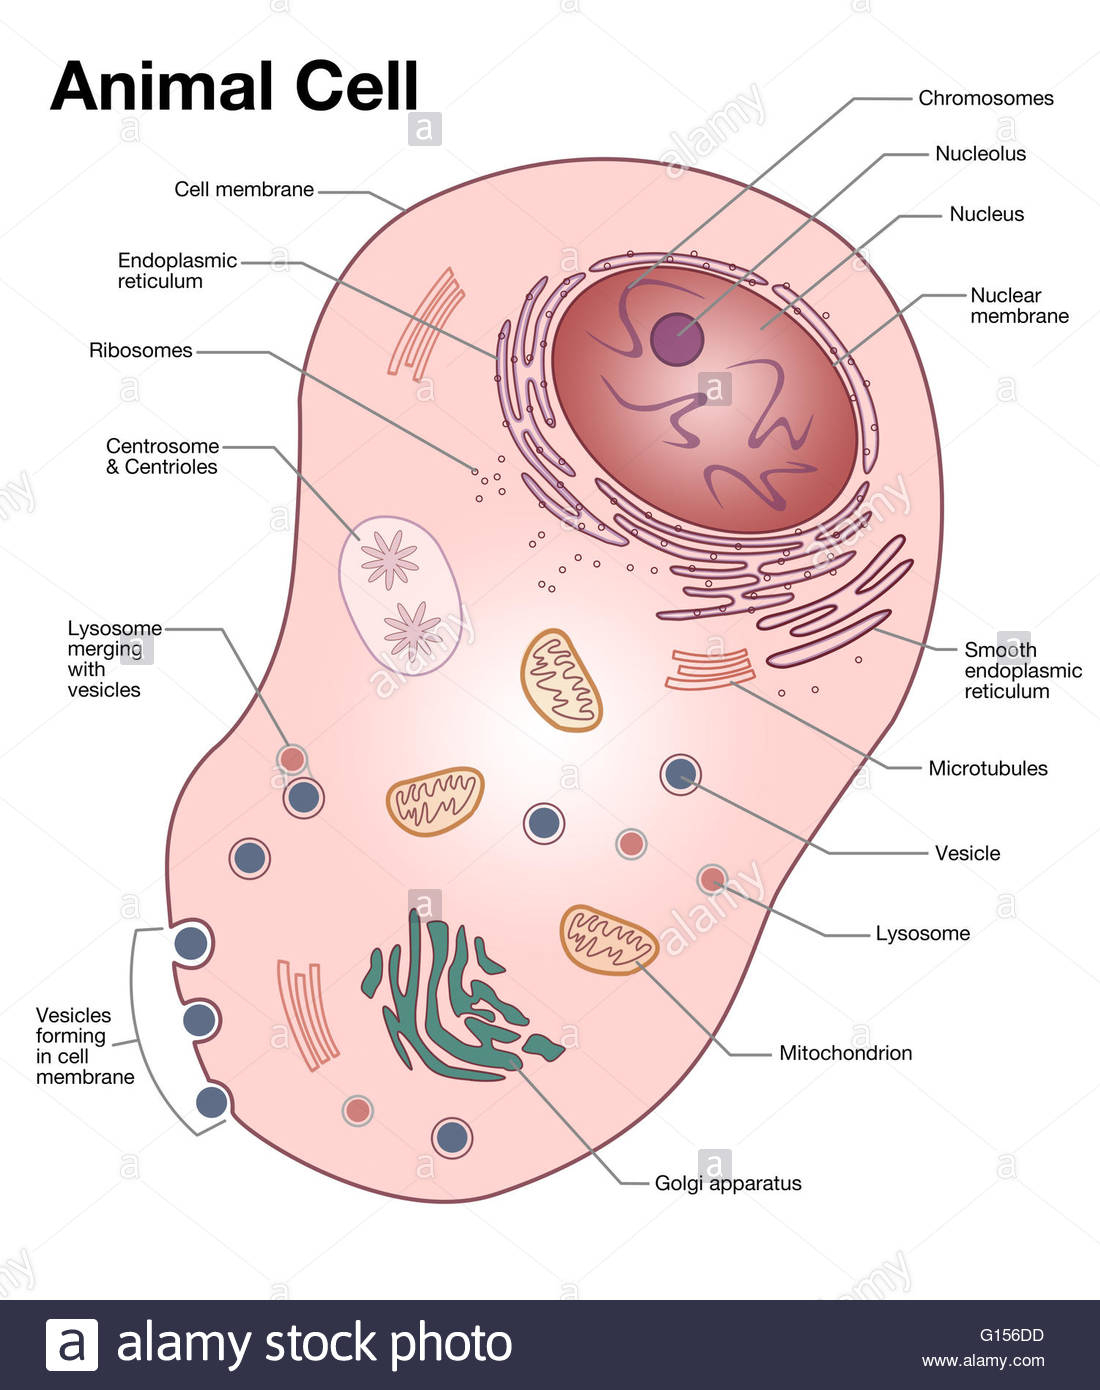 Animal cell drawing at getdrawings free for personal use 1100x1390 animal cell drawing labeled diagram of a typical animal cell with ccuart Images